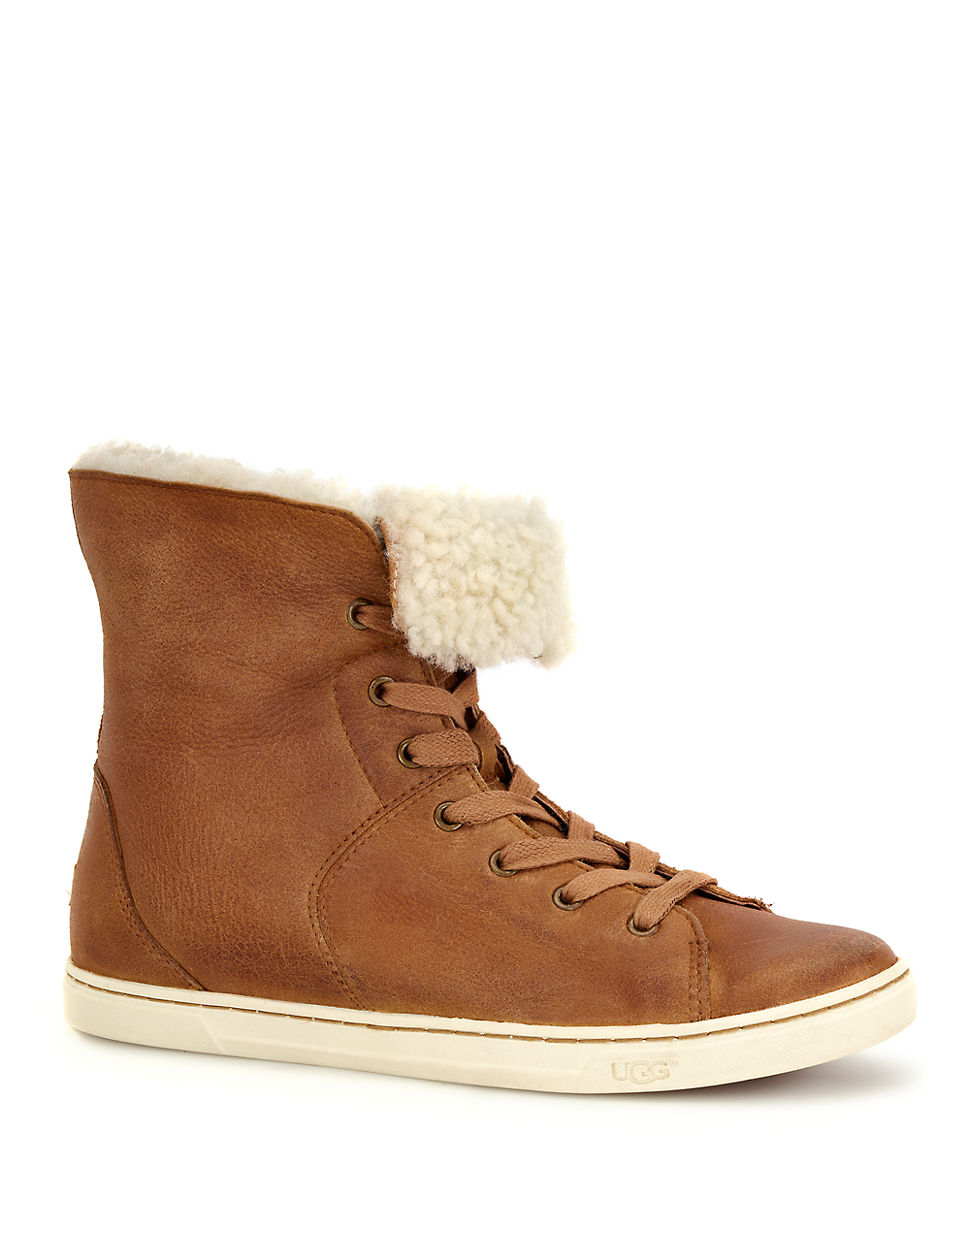 Lyst Ugg Croft Sheepskin High Top Sneakers In Brown